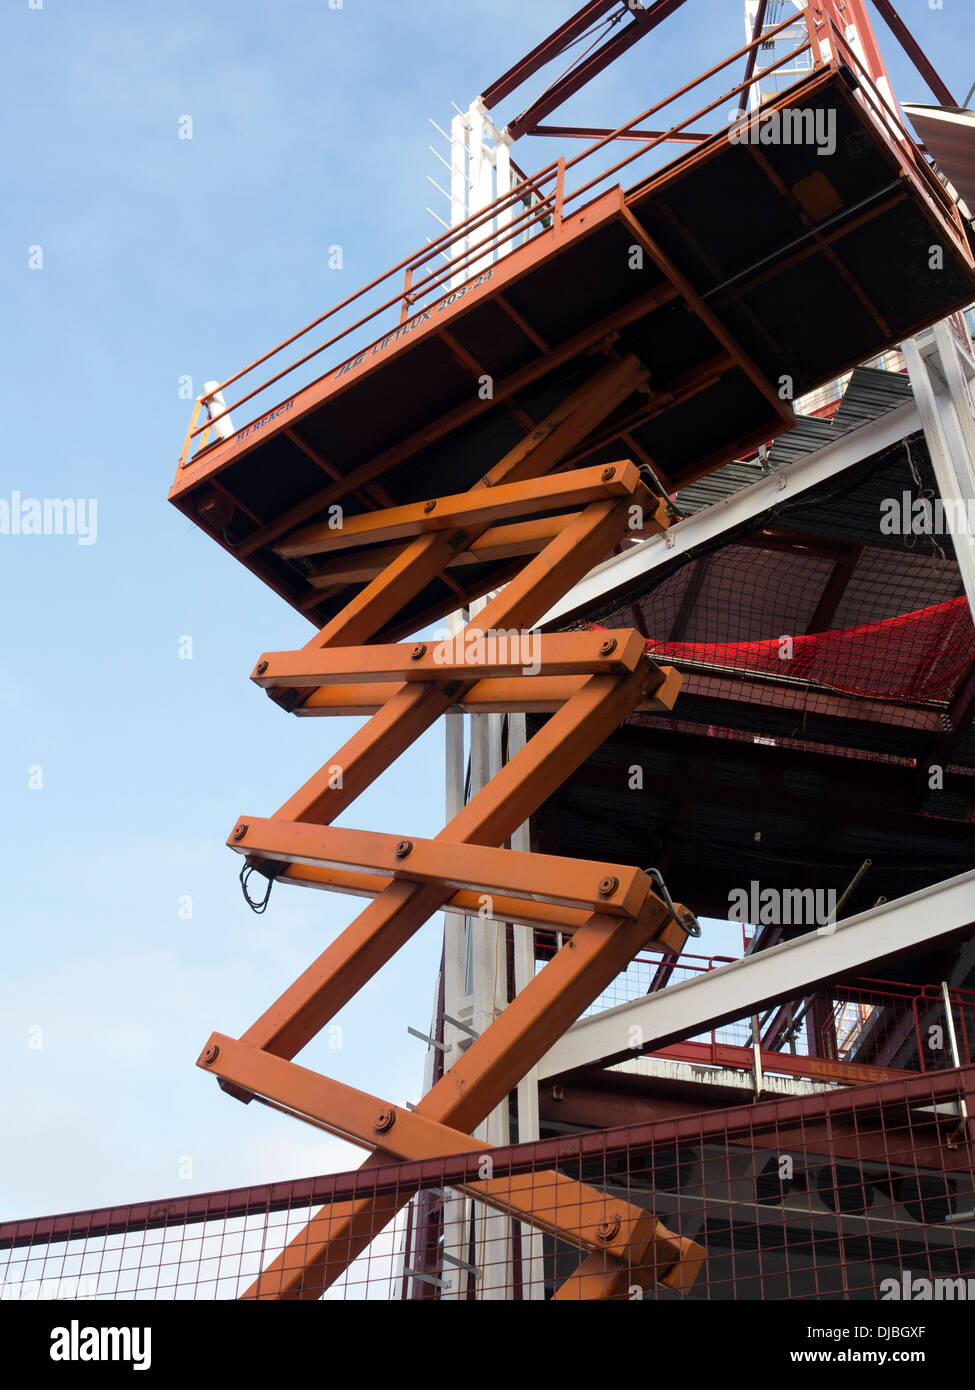 Scissor Lift Hydraulic Platform Access Building Stock Photo